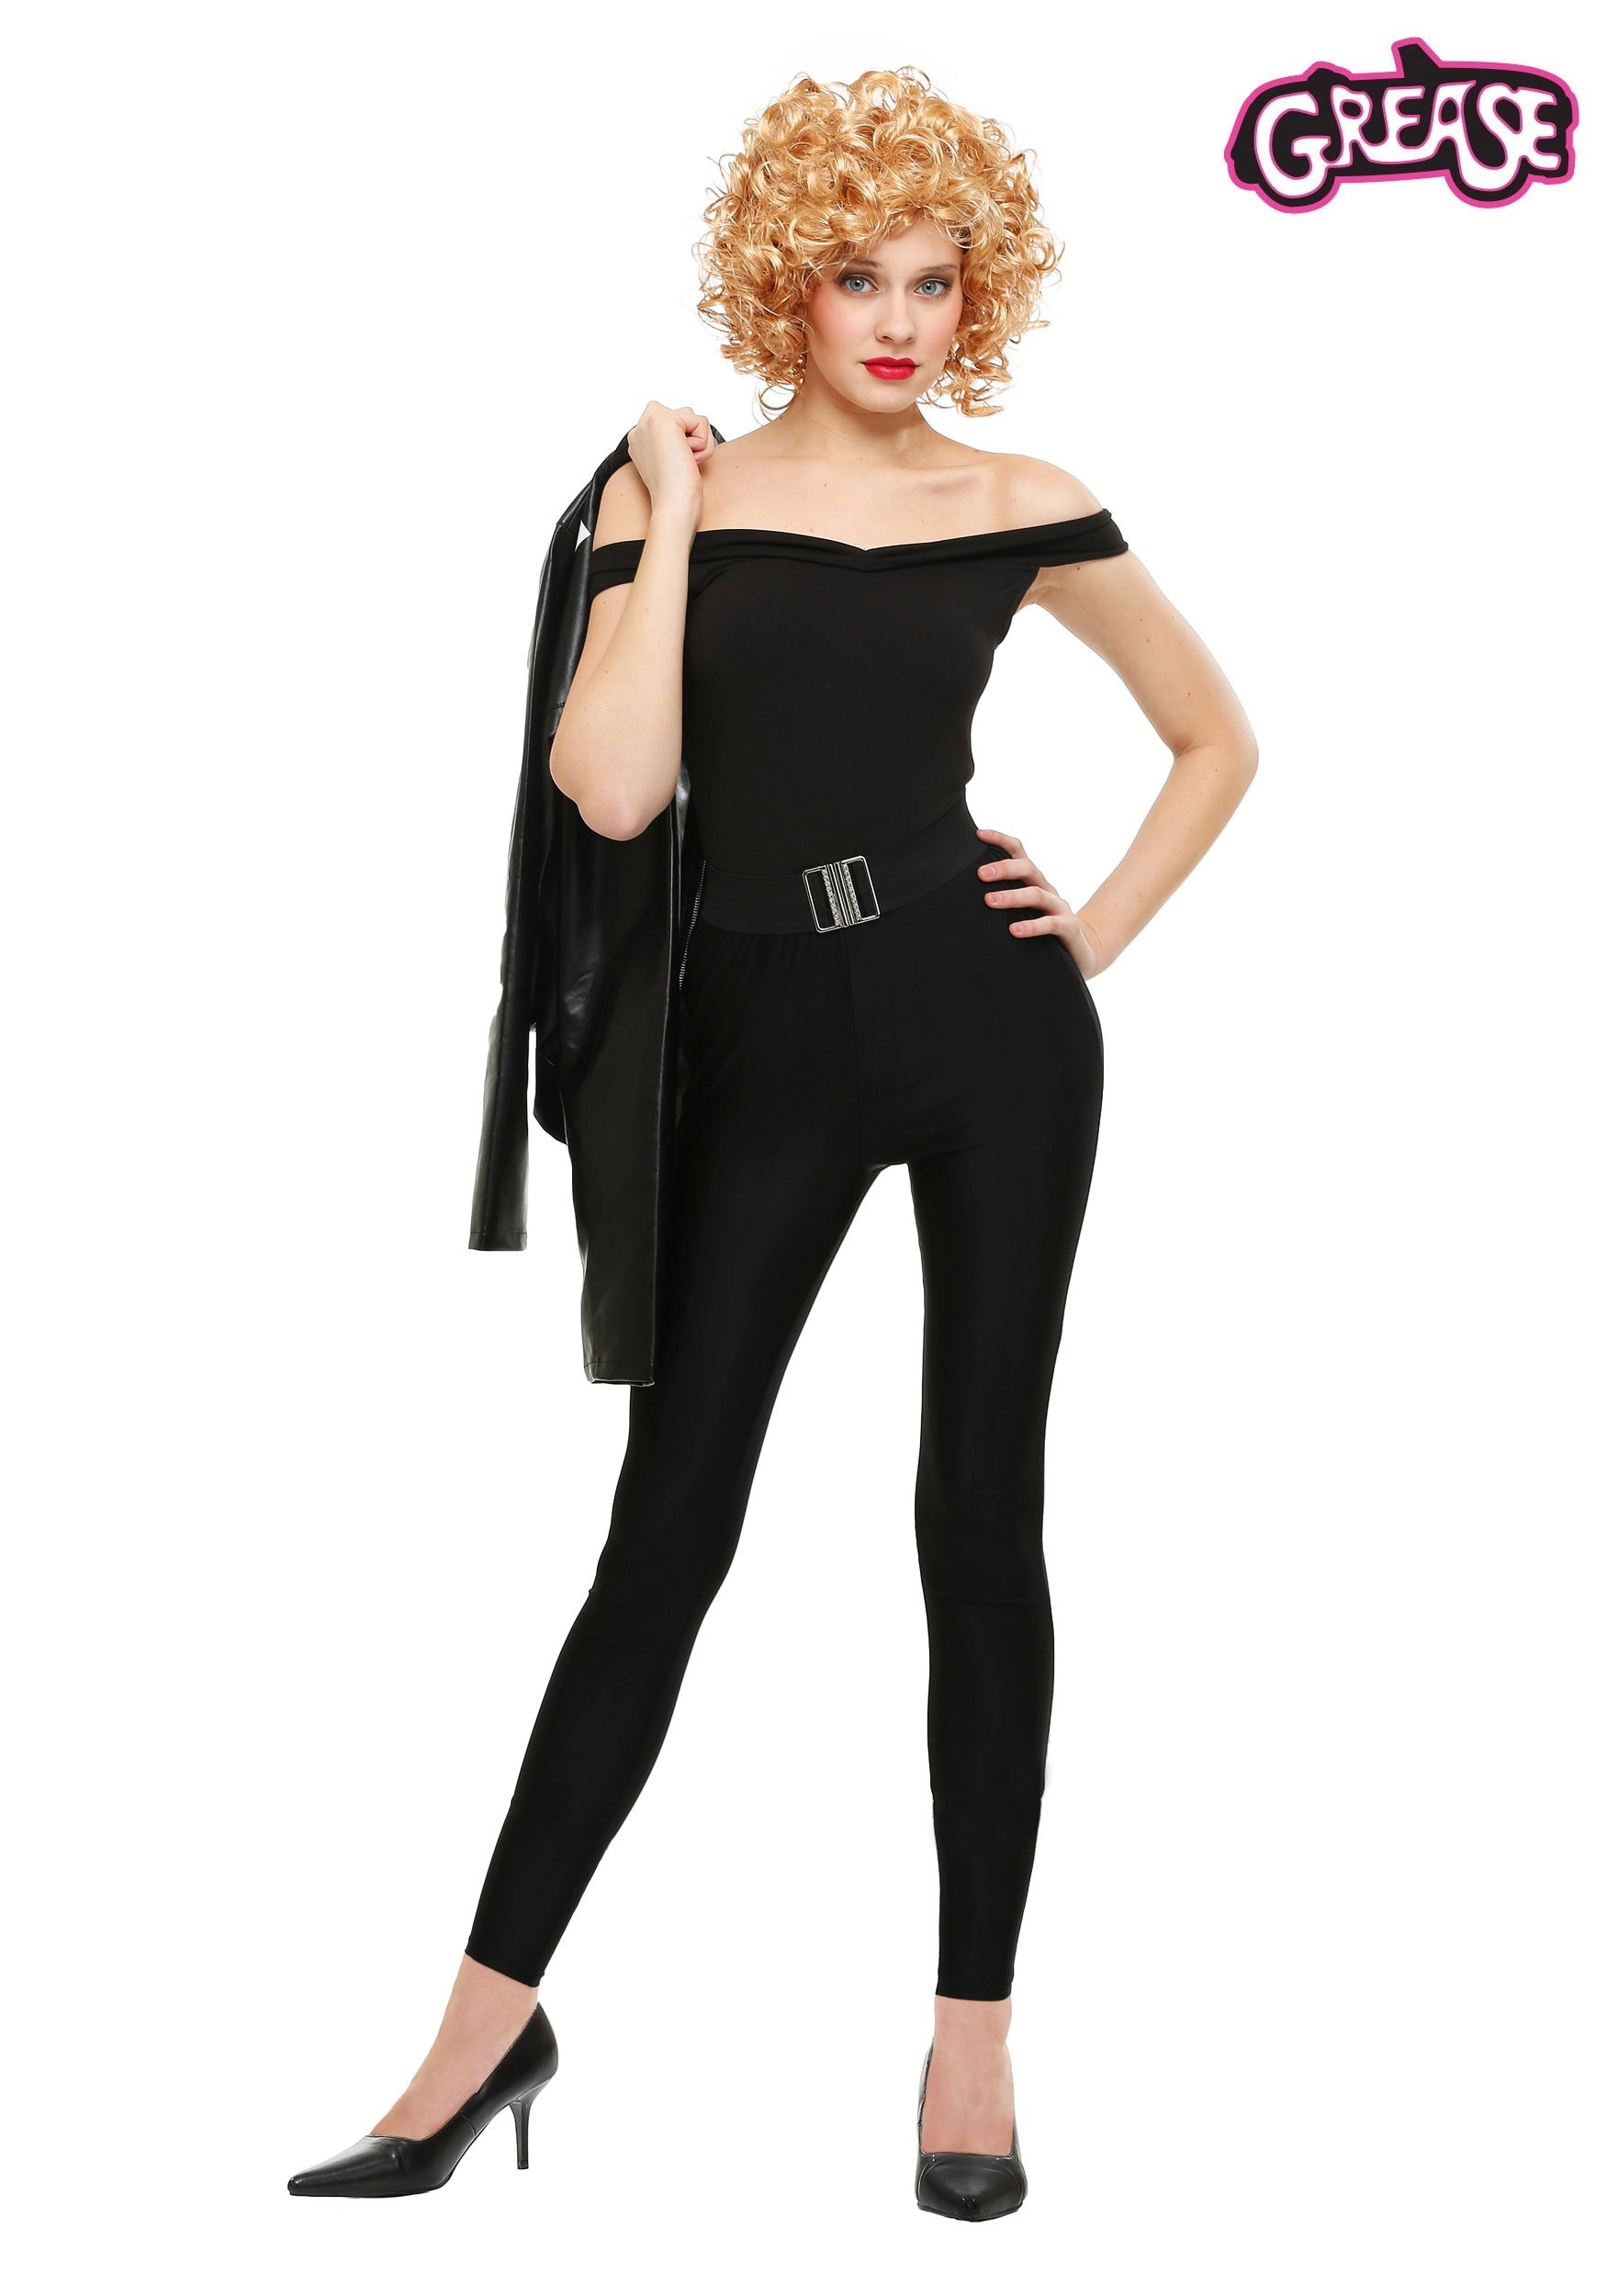 Grease Sandy Costume Bad Sandy